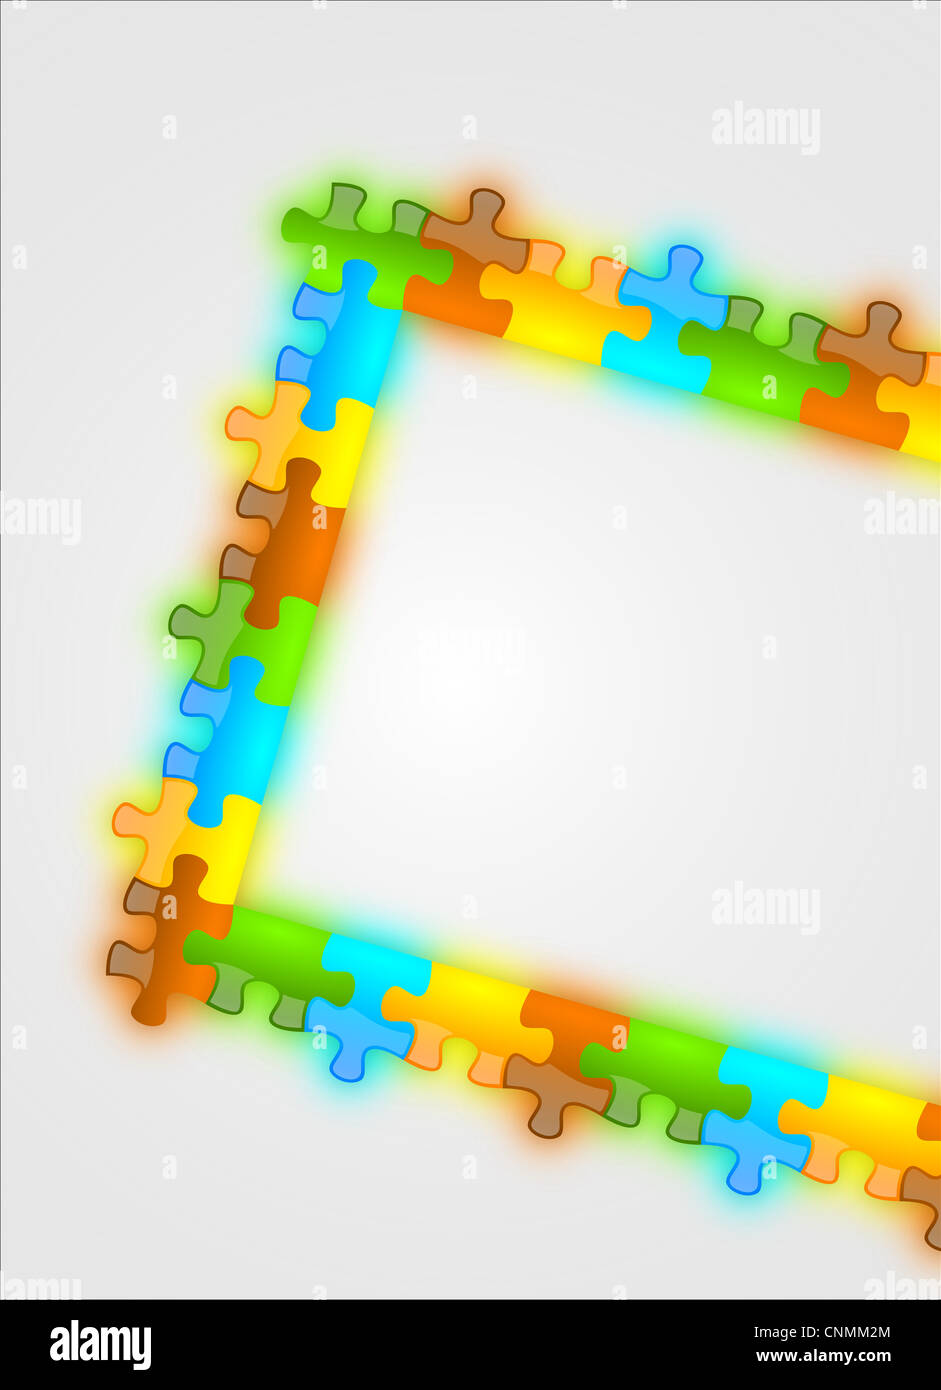 Color and glossy puzzle frame background usefull for cover pages, brochure, presentation and advertising messages - Stock Image